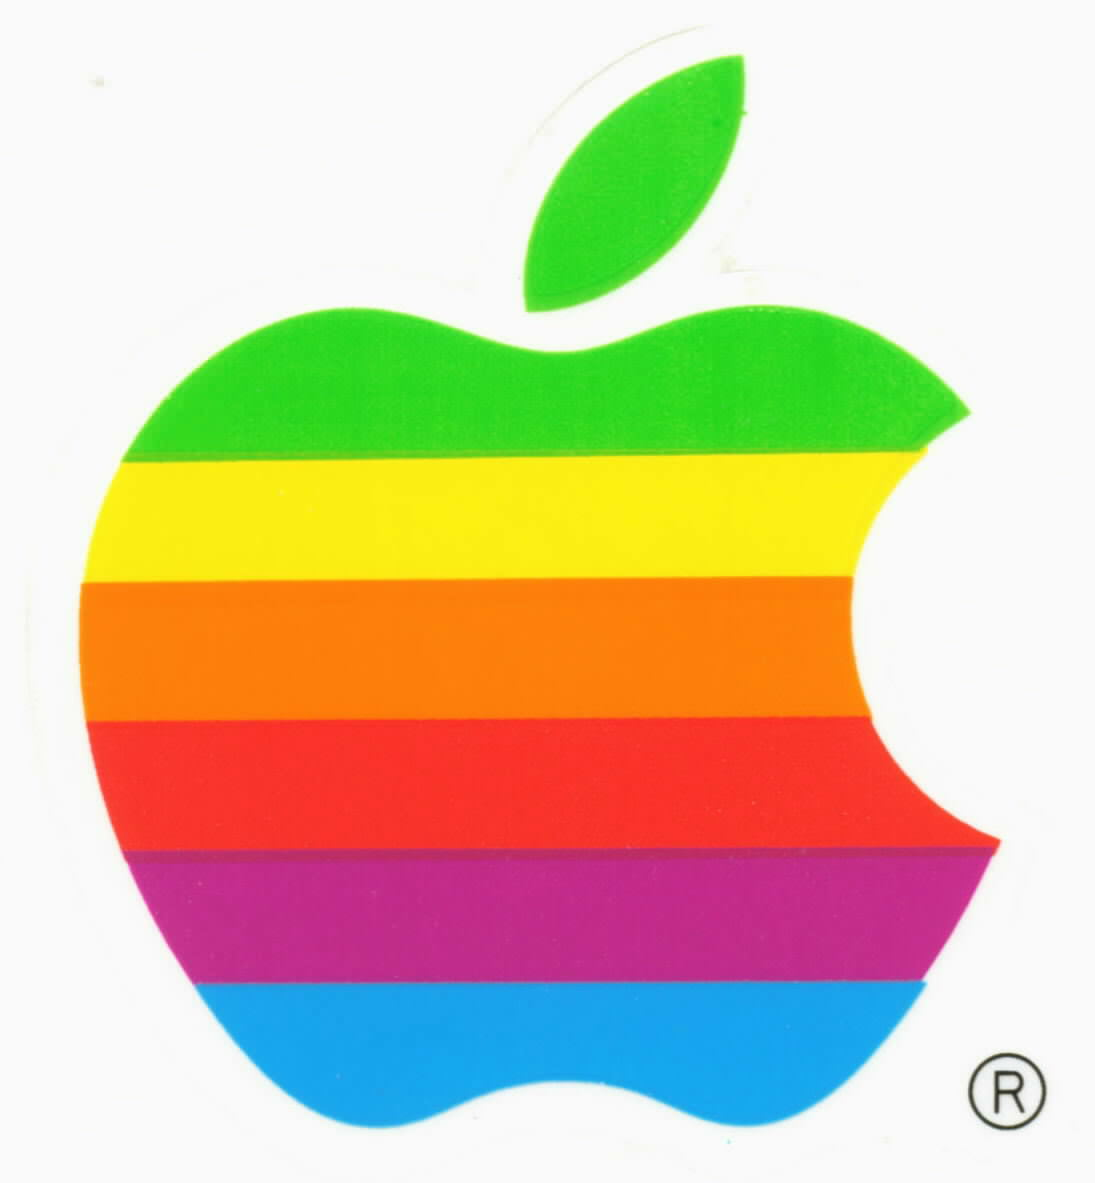 RIP: Steve Jobs… King of Innovation